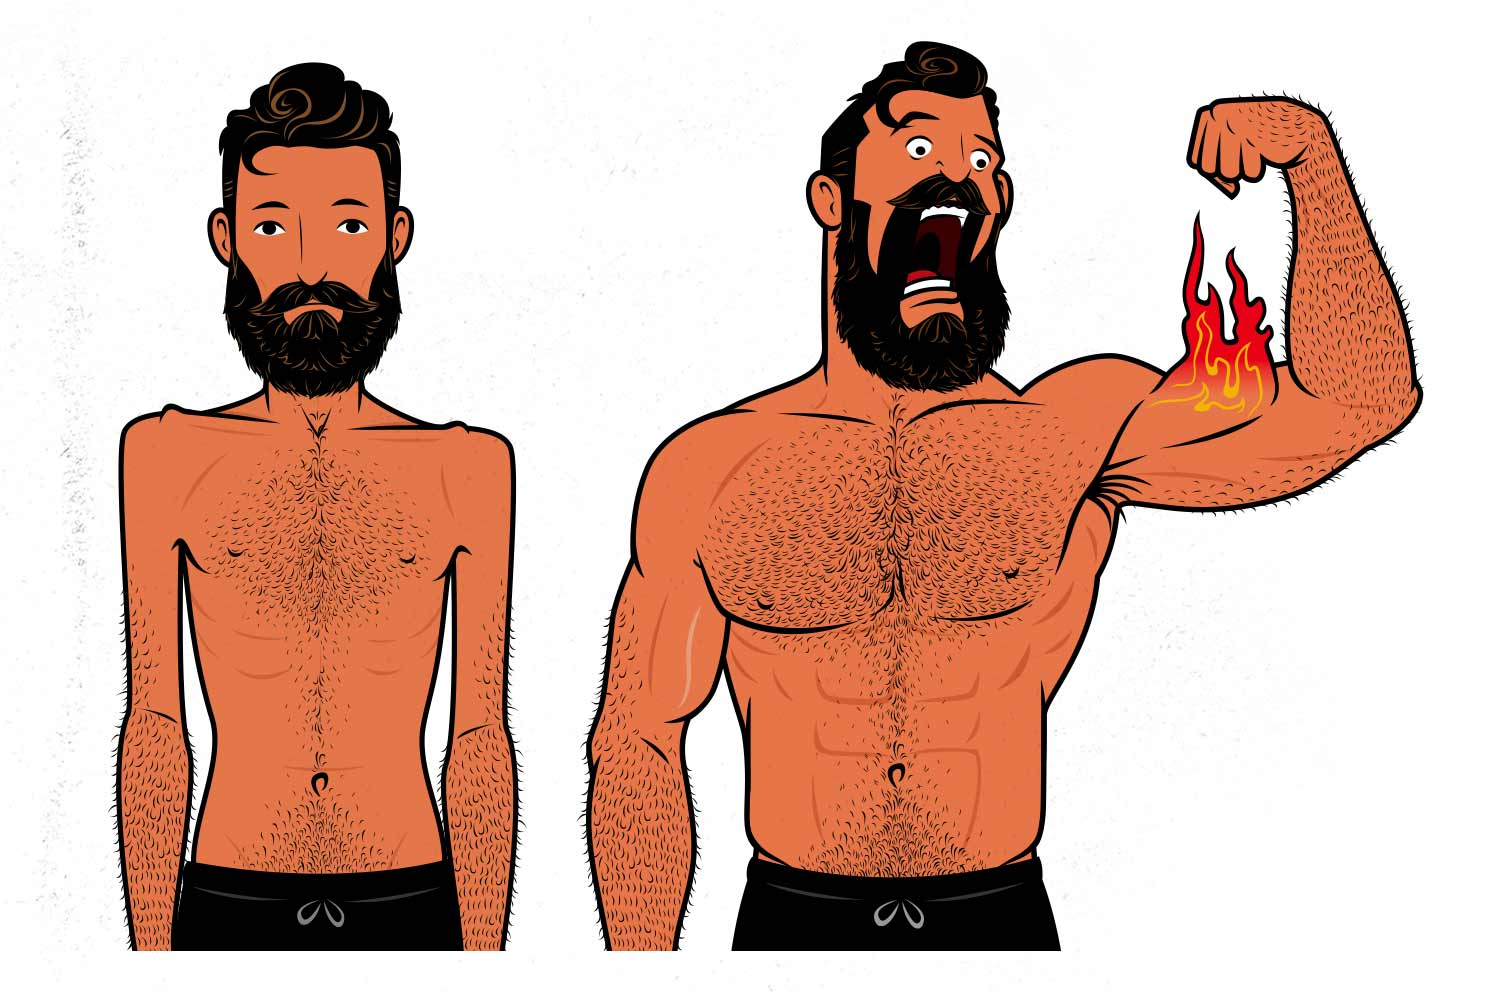 Outlift illustration of a skinny guy gaining muscle mass.